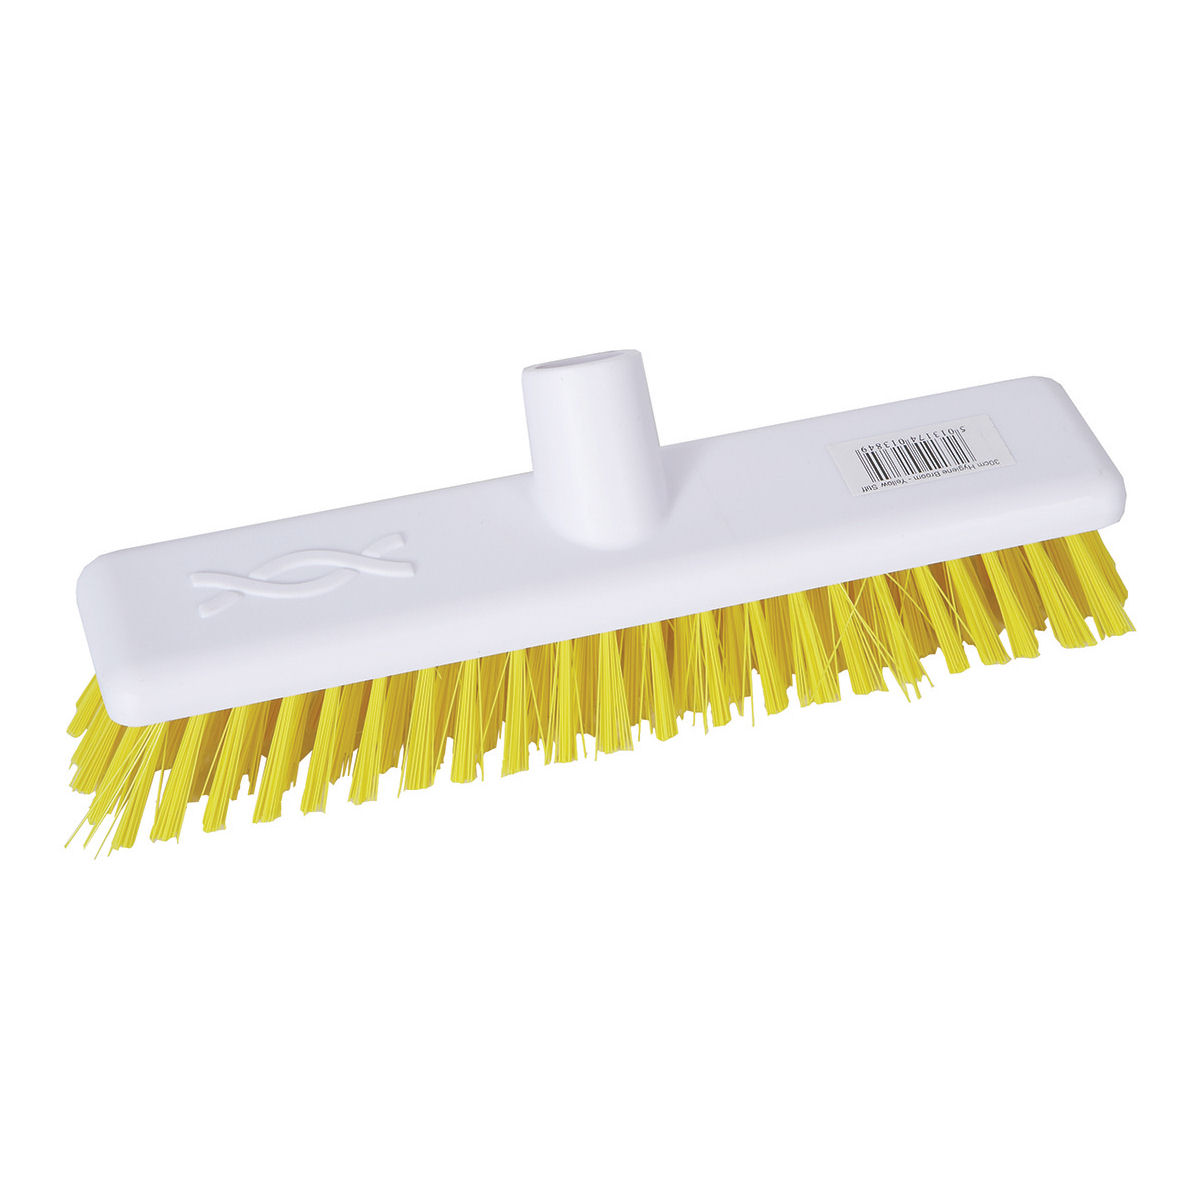 Robert Scott & Sons Abbey Hygiene Broom Head Hard Washable 12in Yellow Ref 102903YELLOW